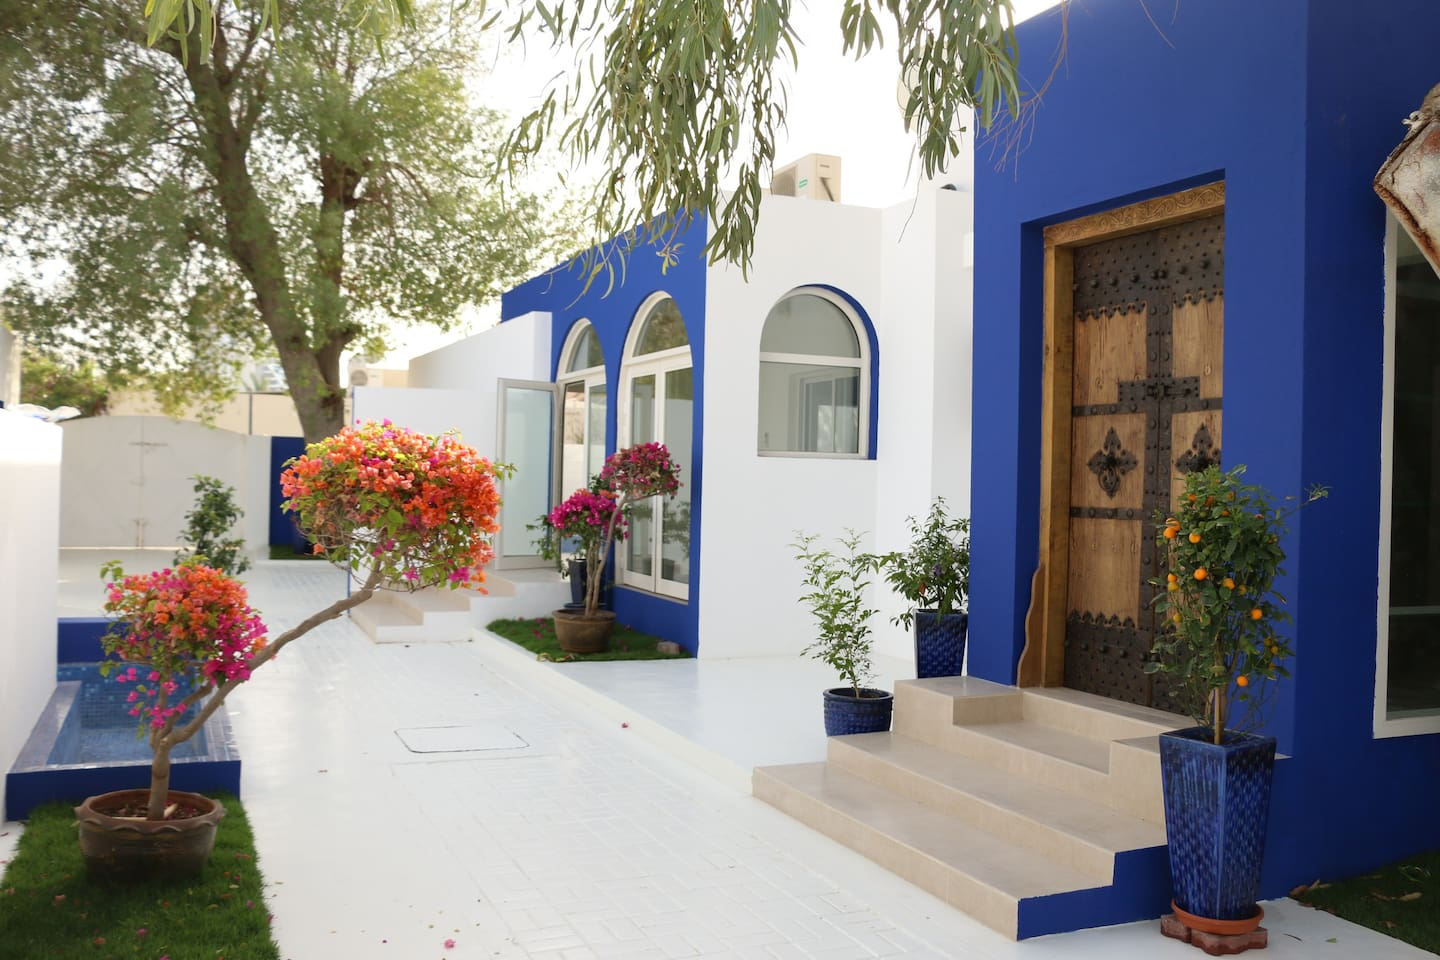 Beautiful Garden can be accessed by all the guests